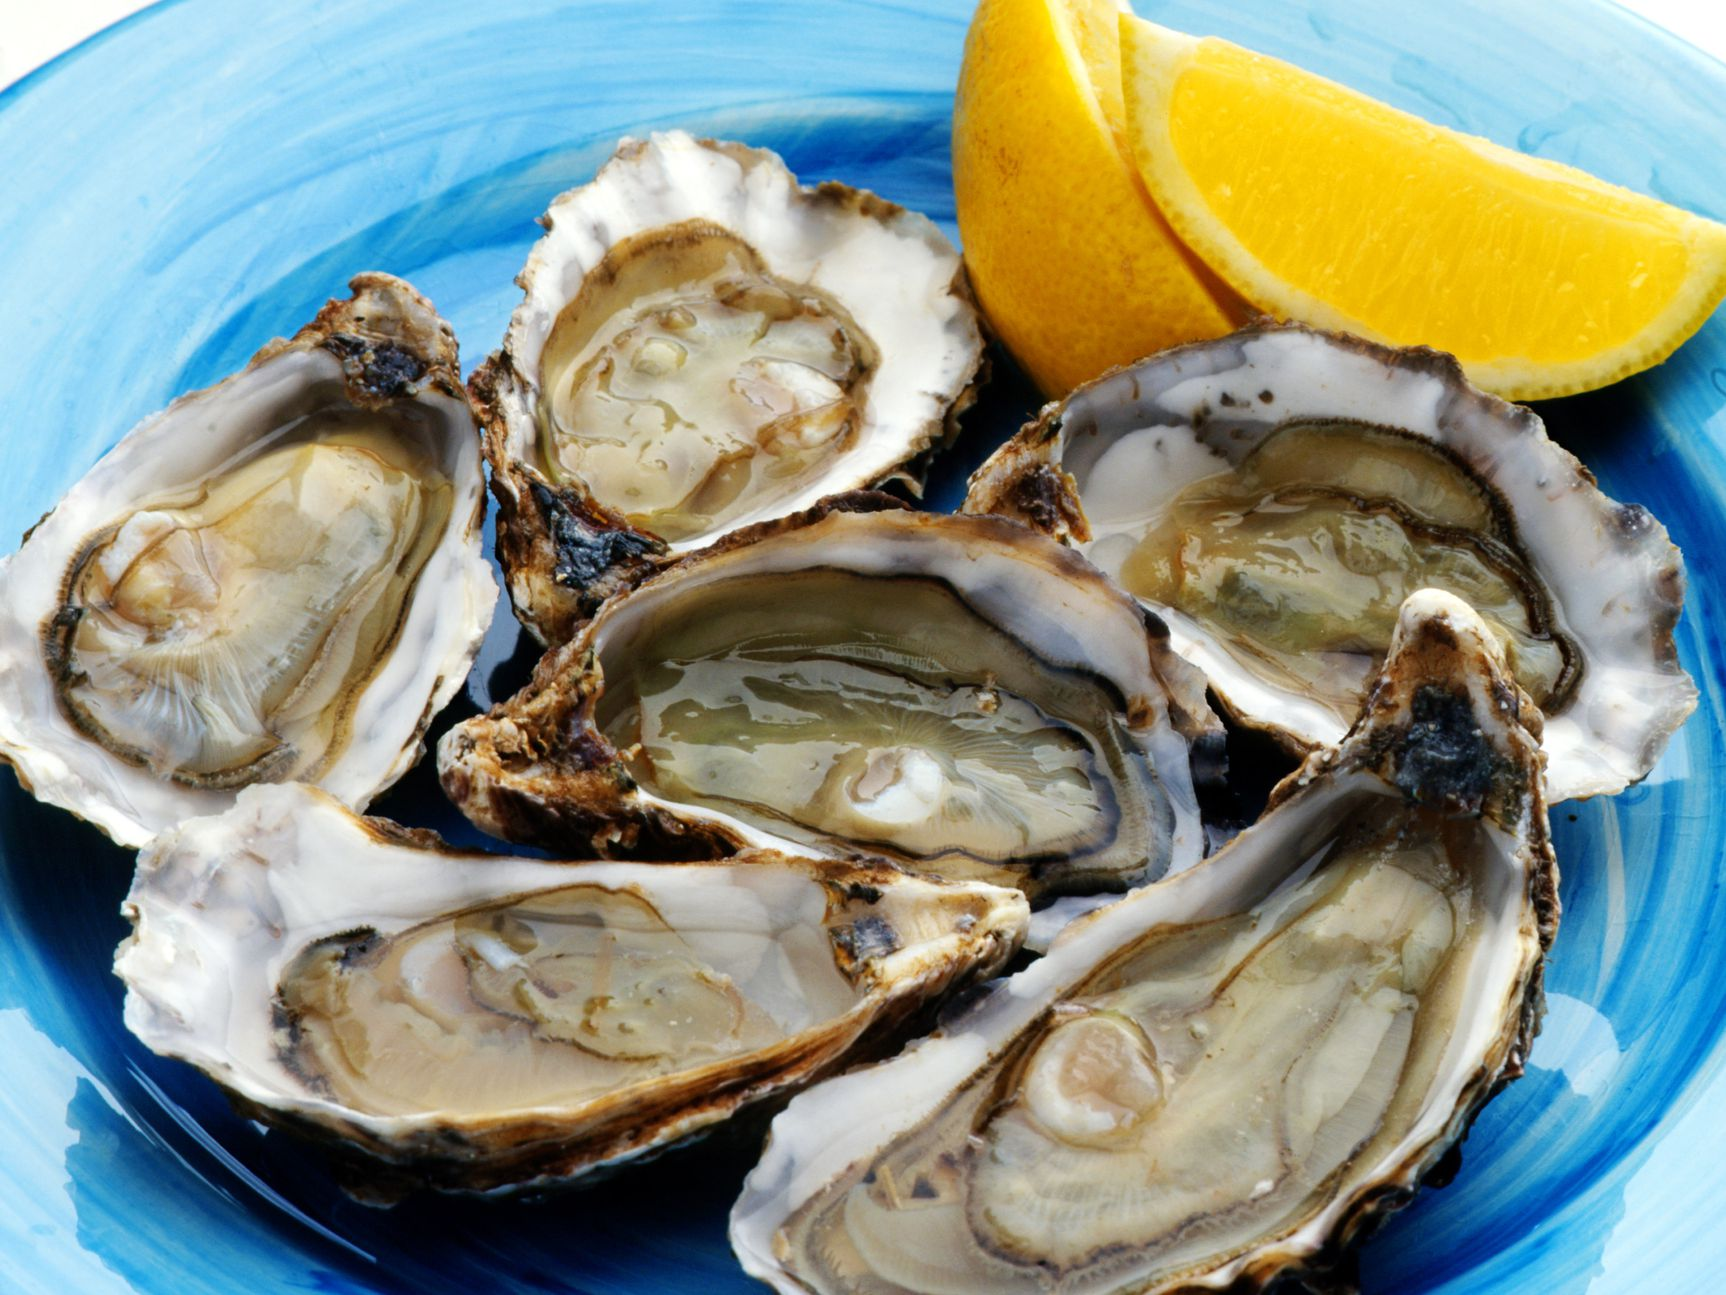 Oyster Selection and Storage Tips